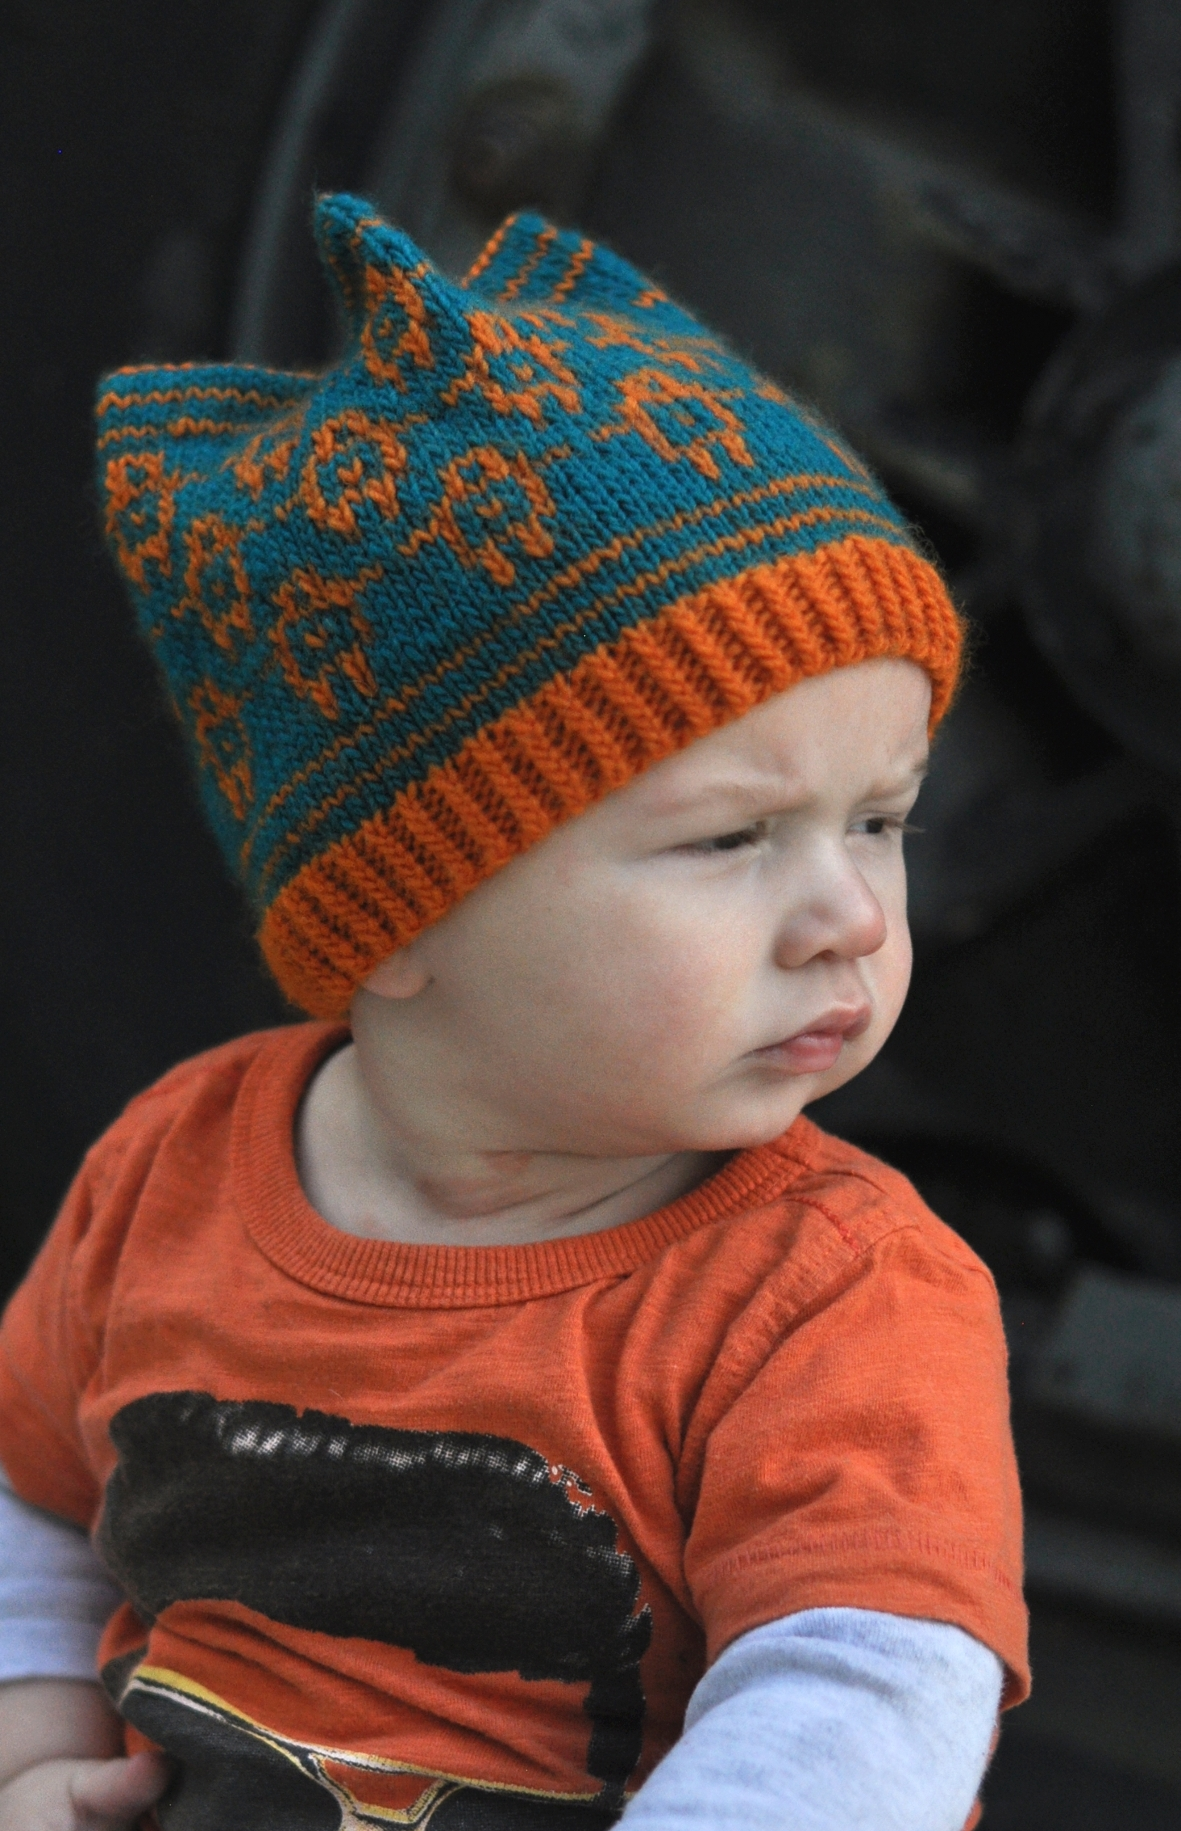 Golem stranded Hat knitting pattern for kids